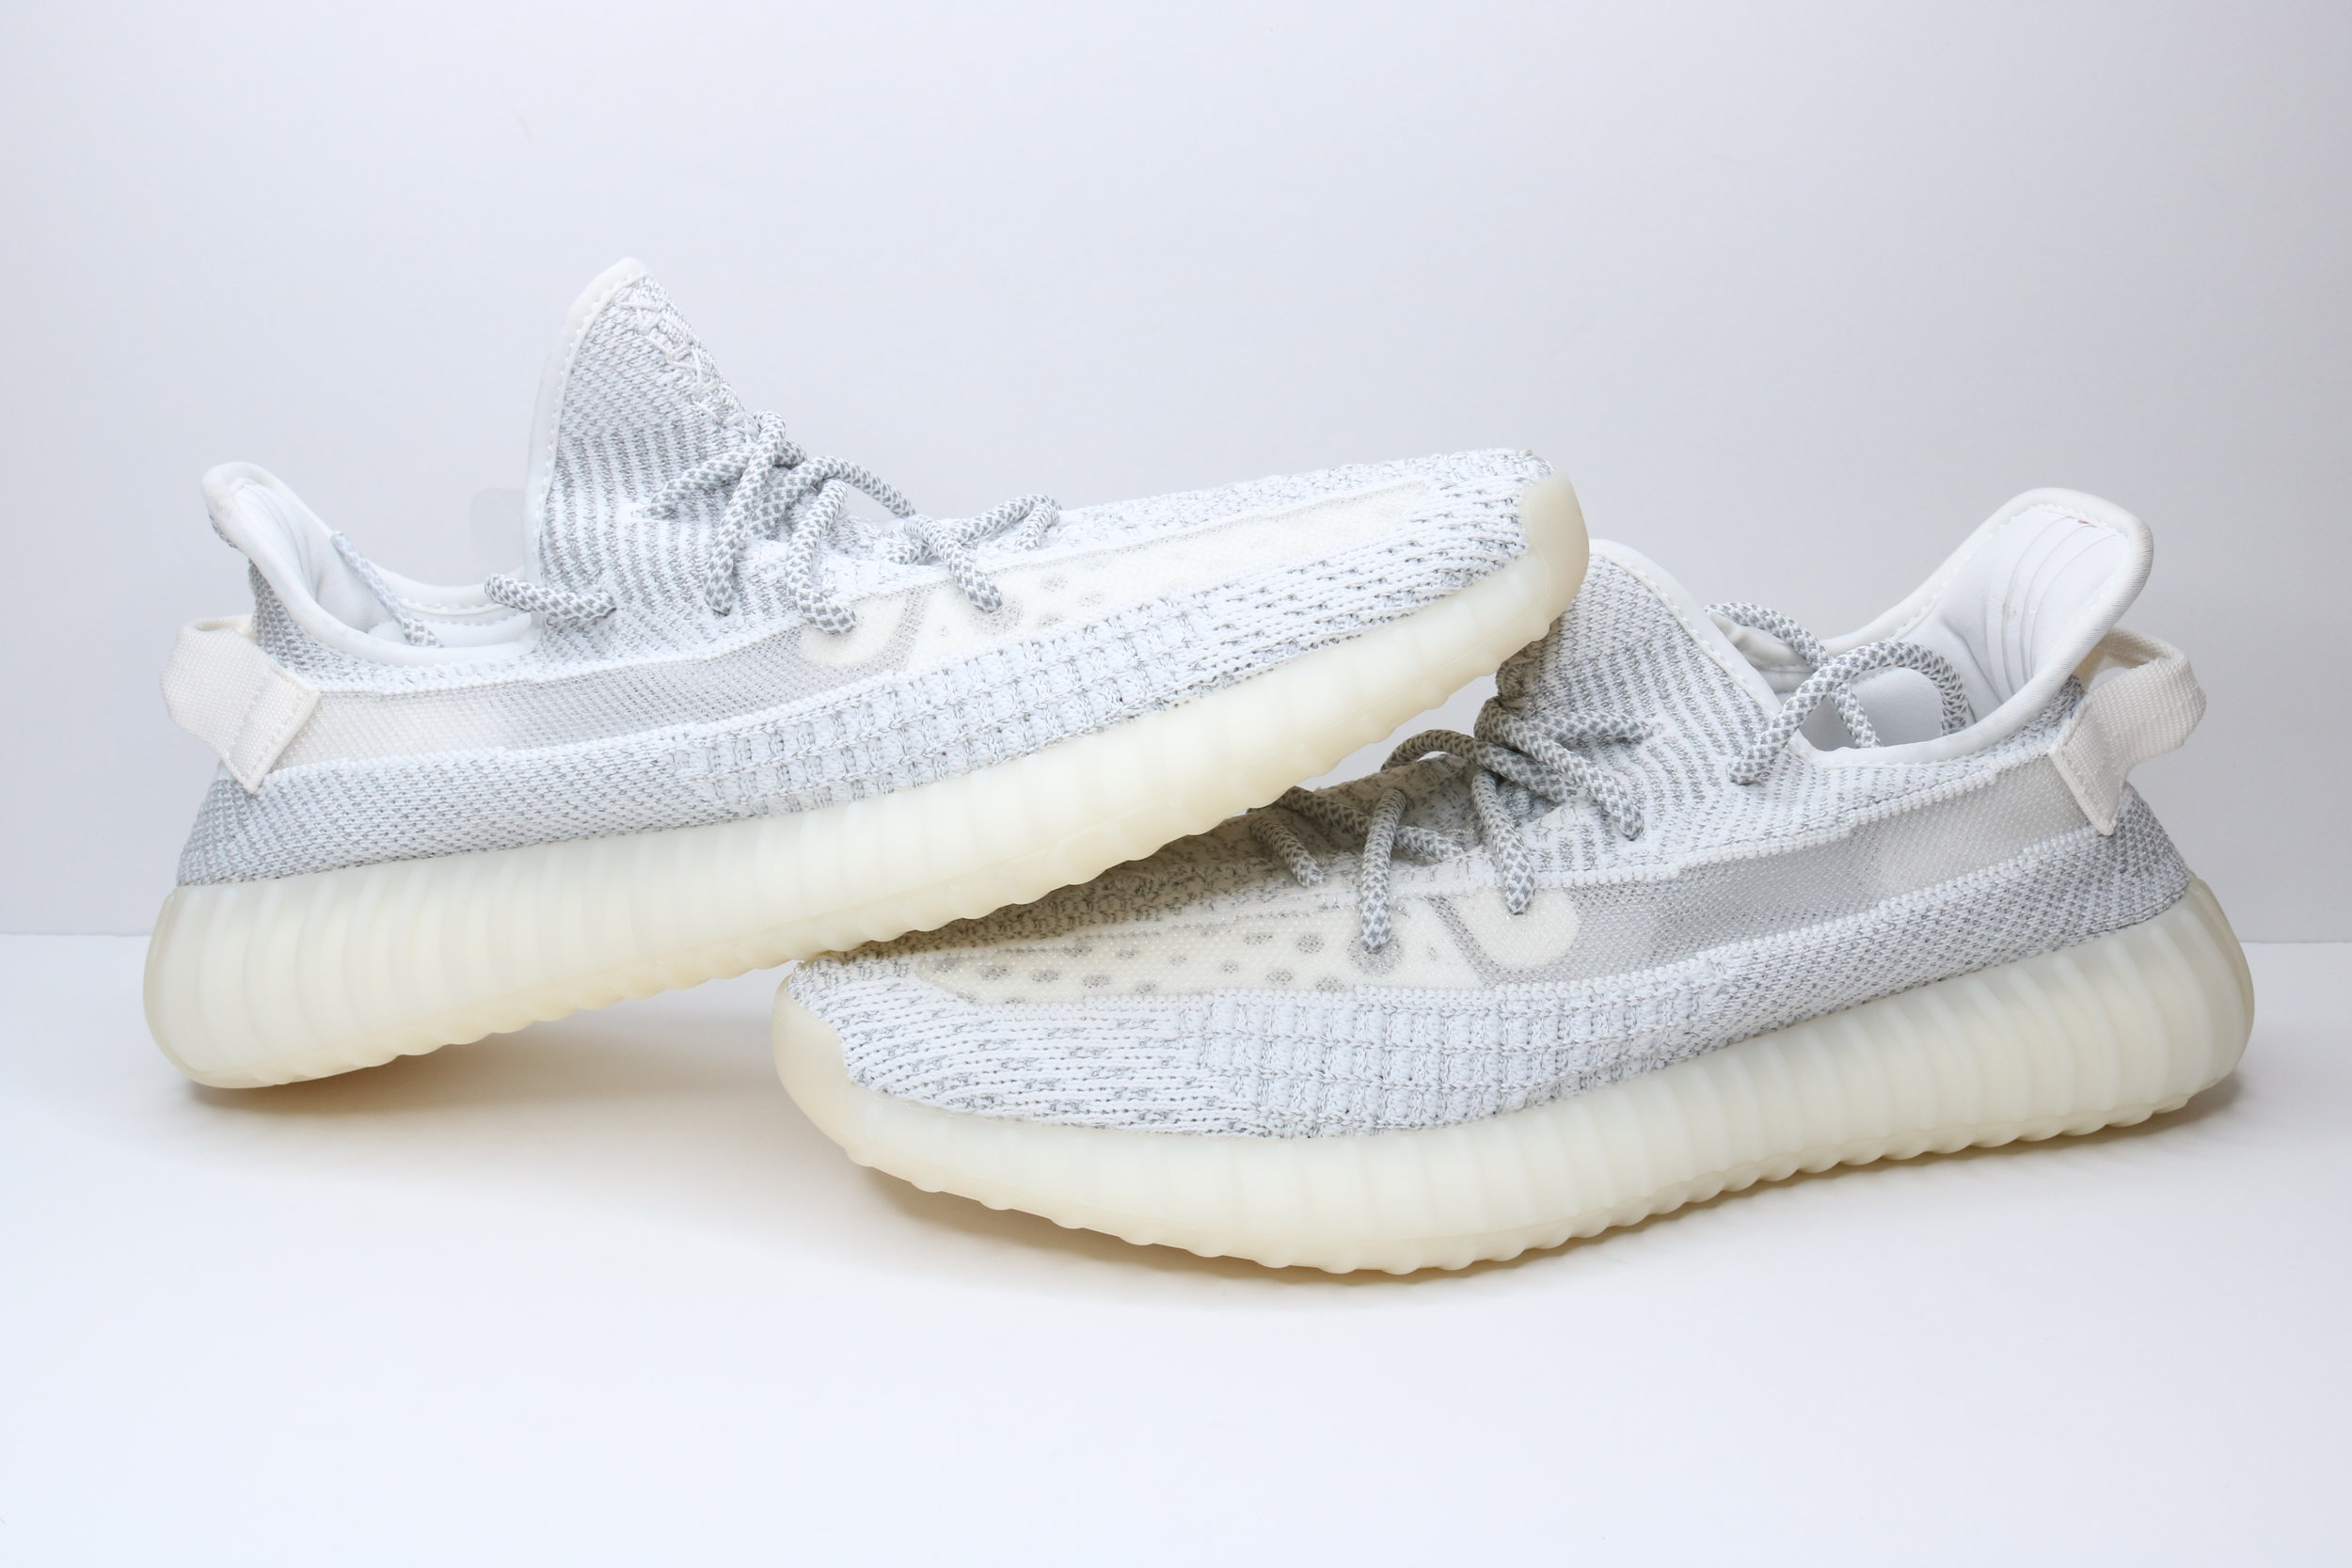 yeezy boost turtle dove fake vs real